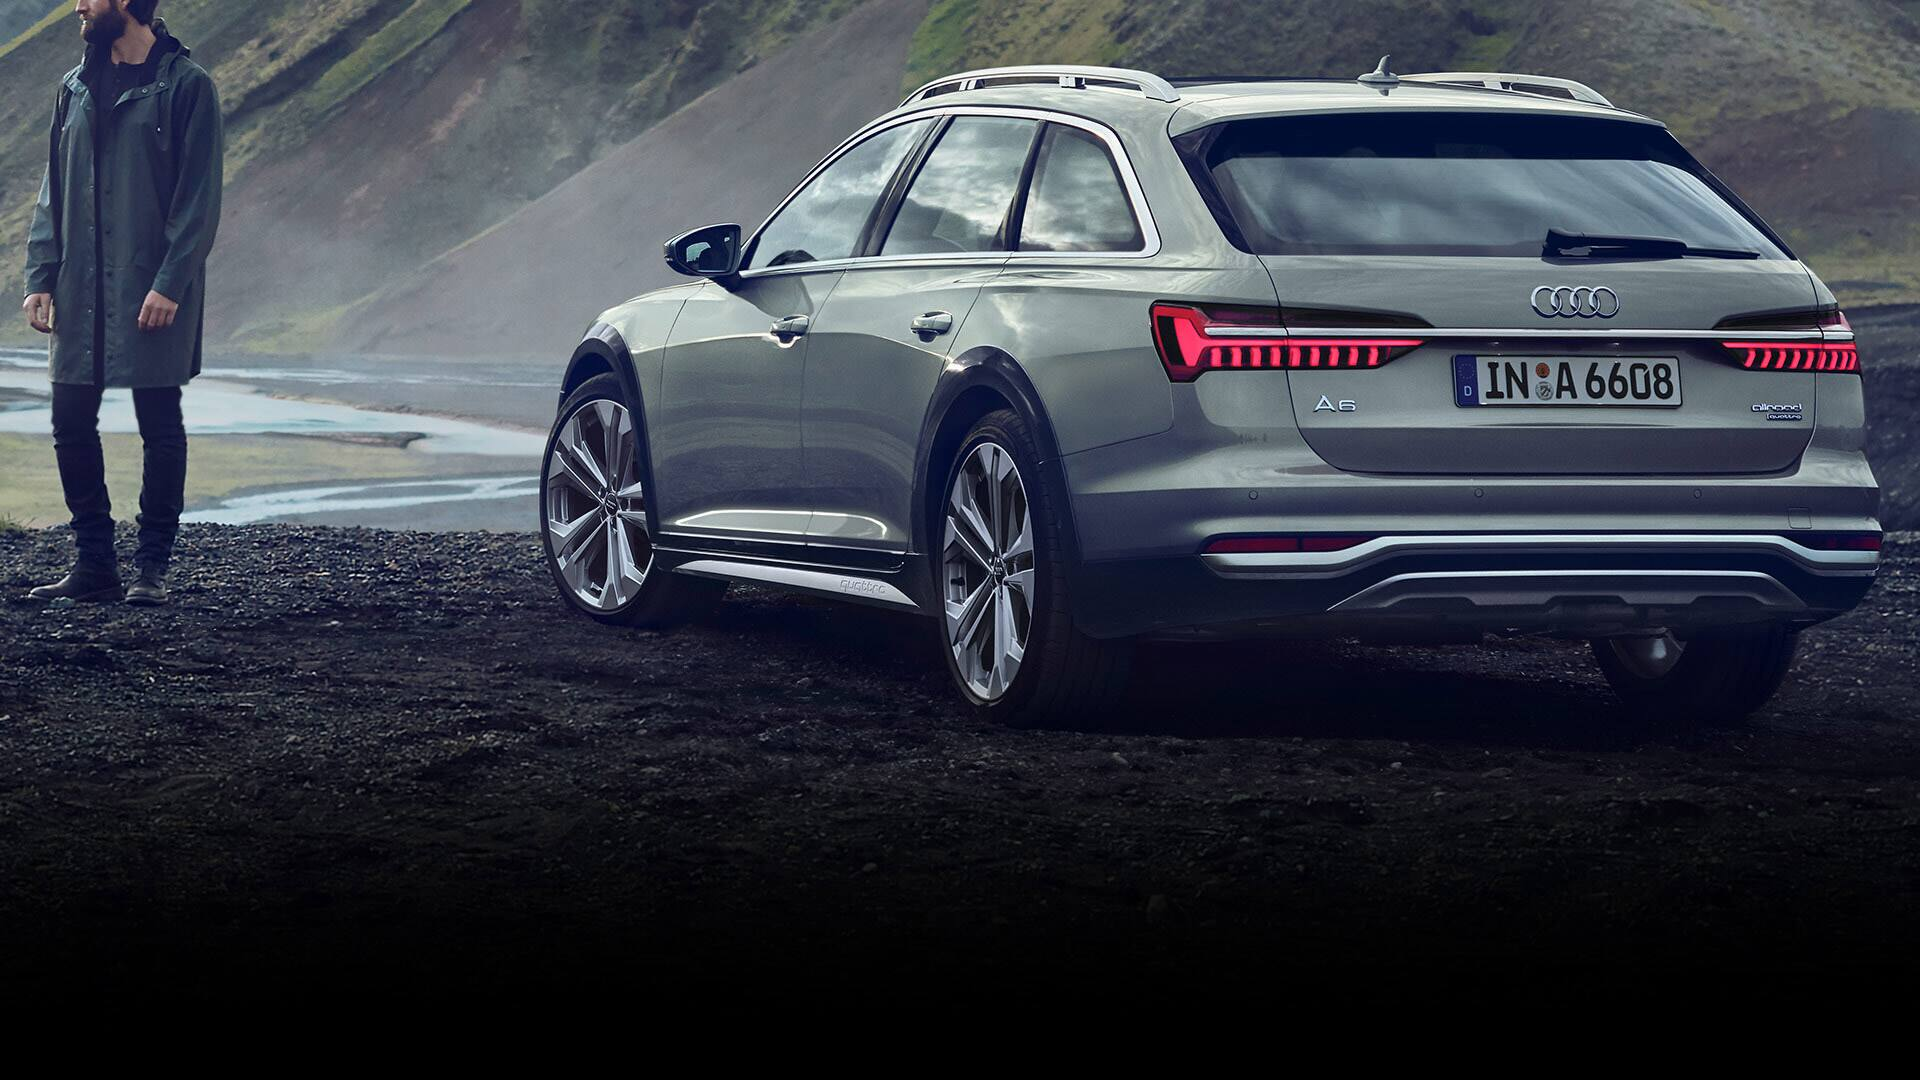 2020 The Audi A6 Prices